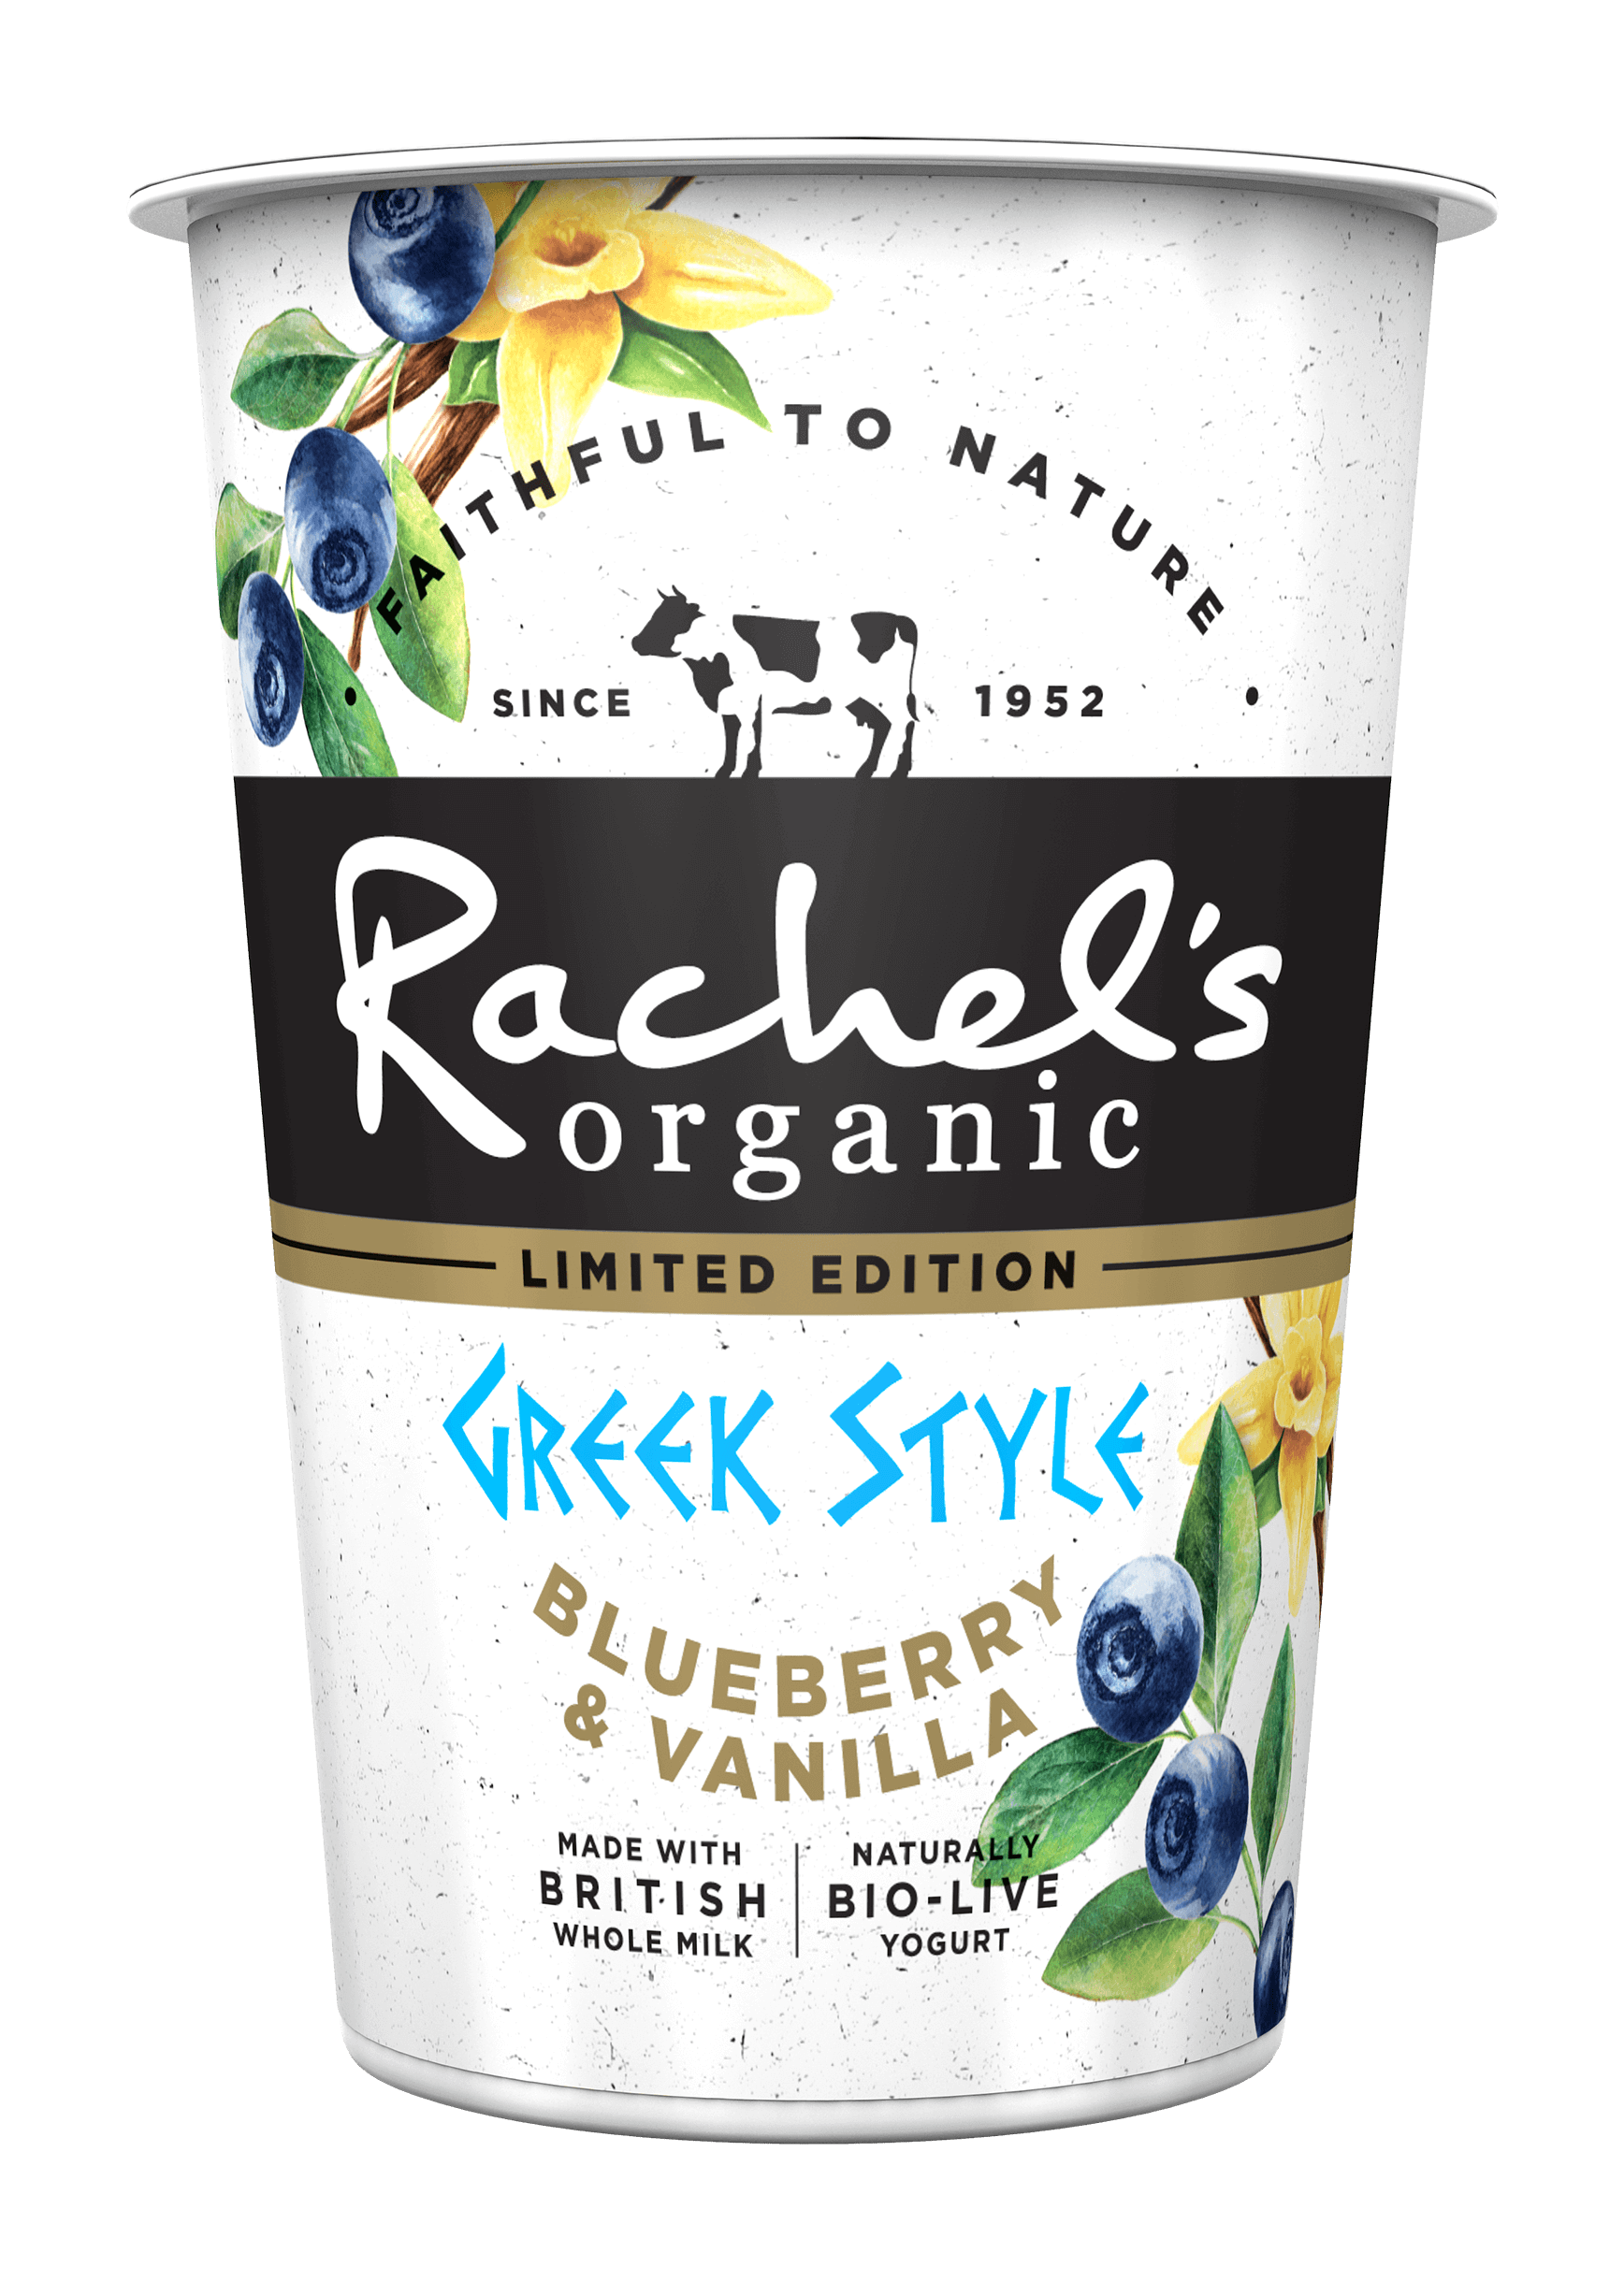 https://www.rachelsorganic.co.uk/wp-content/uploads/2019/12/5021638000441-3D-RACHELS-450G-POT-GREEK-STYLE-BLUEBERRY-VANILLA.png